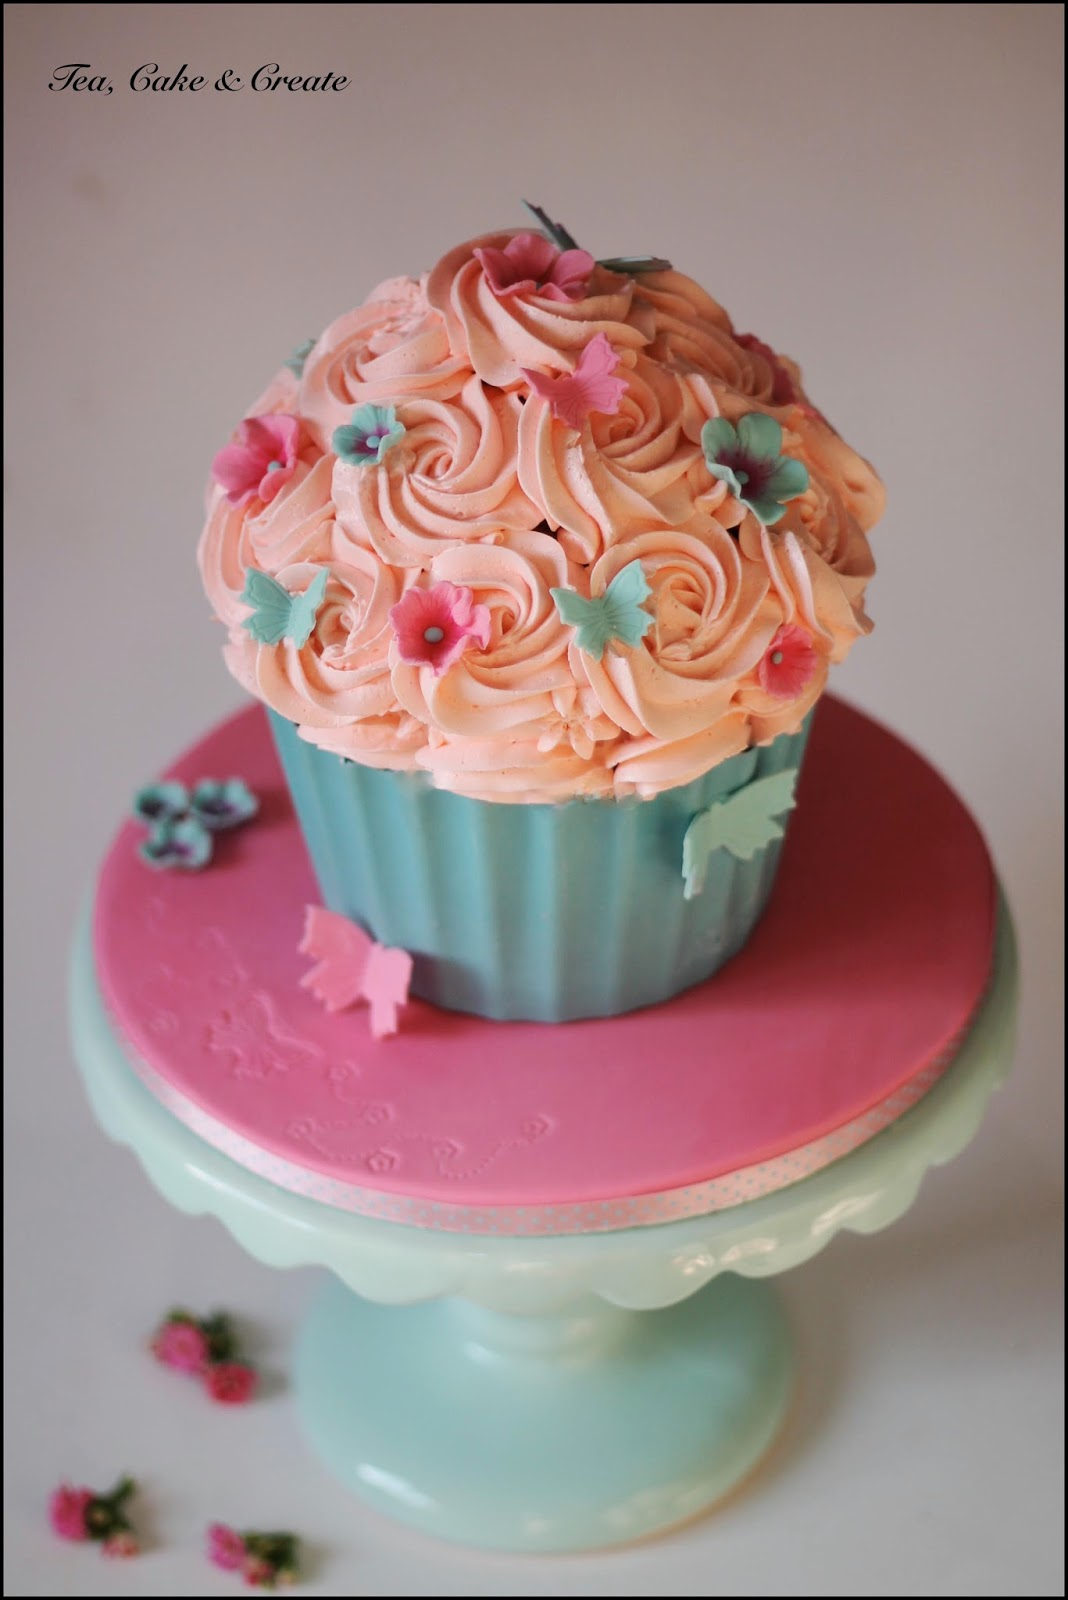 How to Cover a Giant Cupcake with Fondant